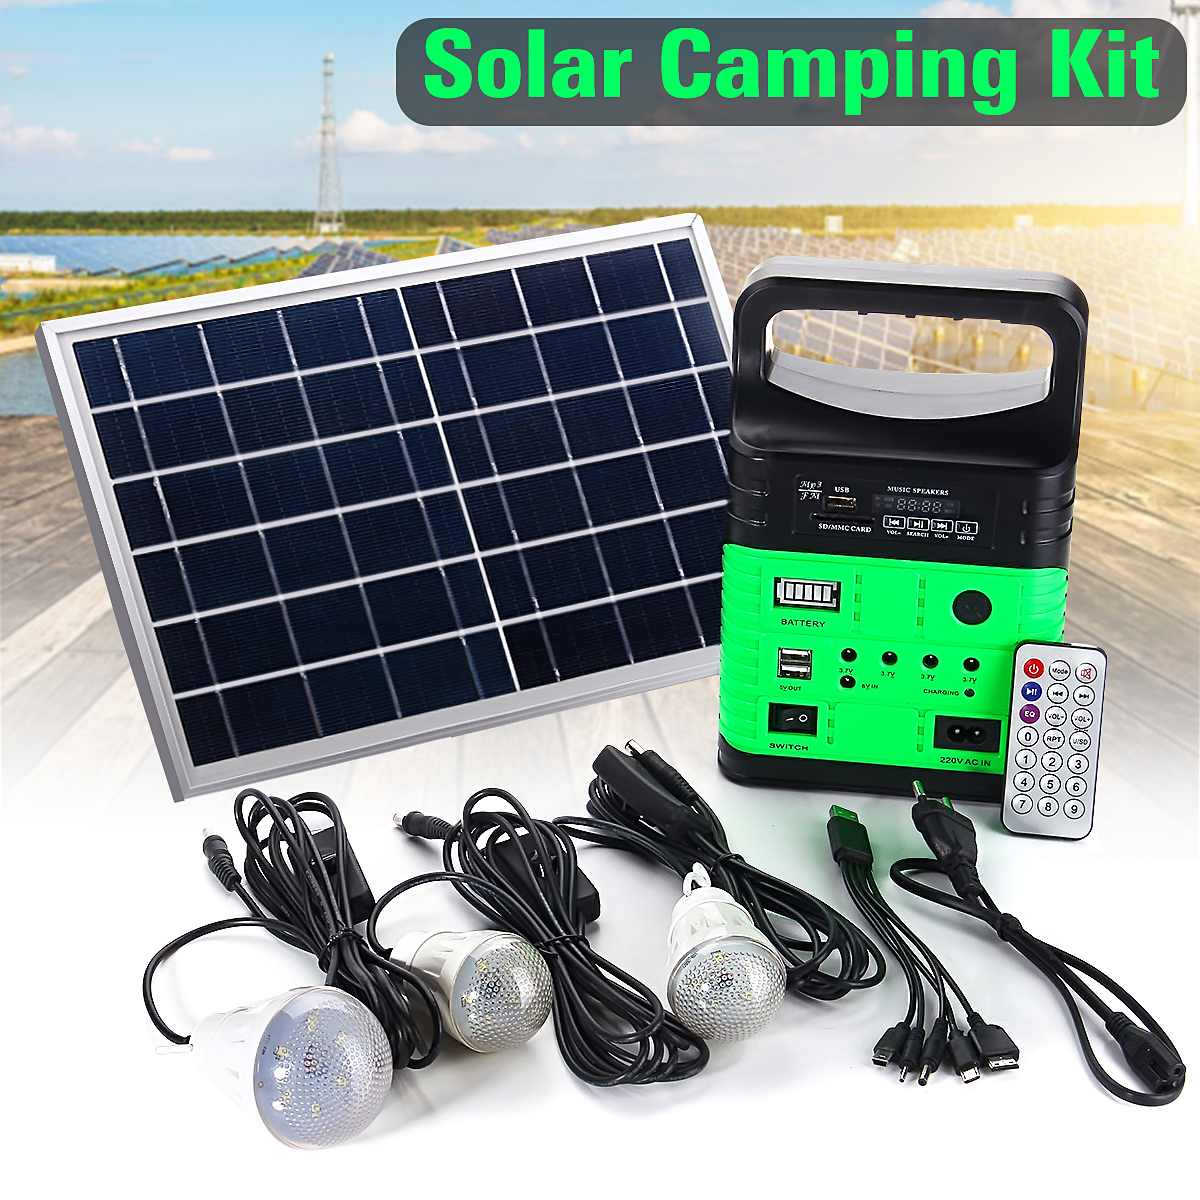 Smuxi Portable Solar Generator Outdoor Power Mini DC6W Solar Panel 6V-9Ah Lead-acid Battery Charging LED Lighting System